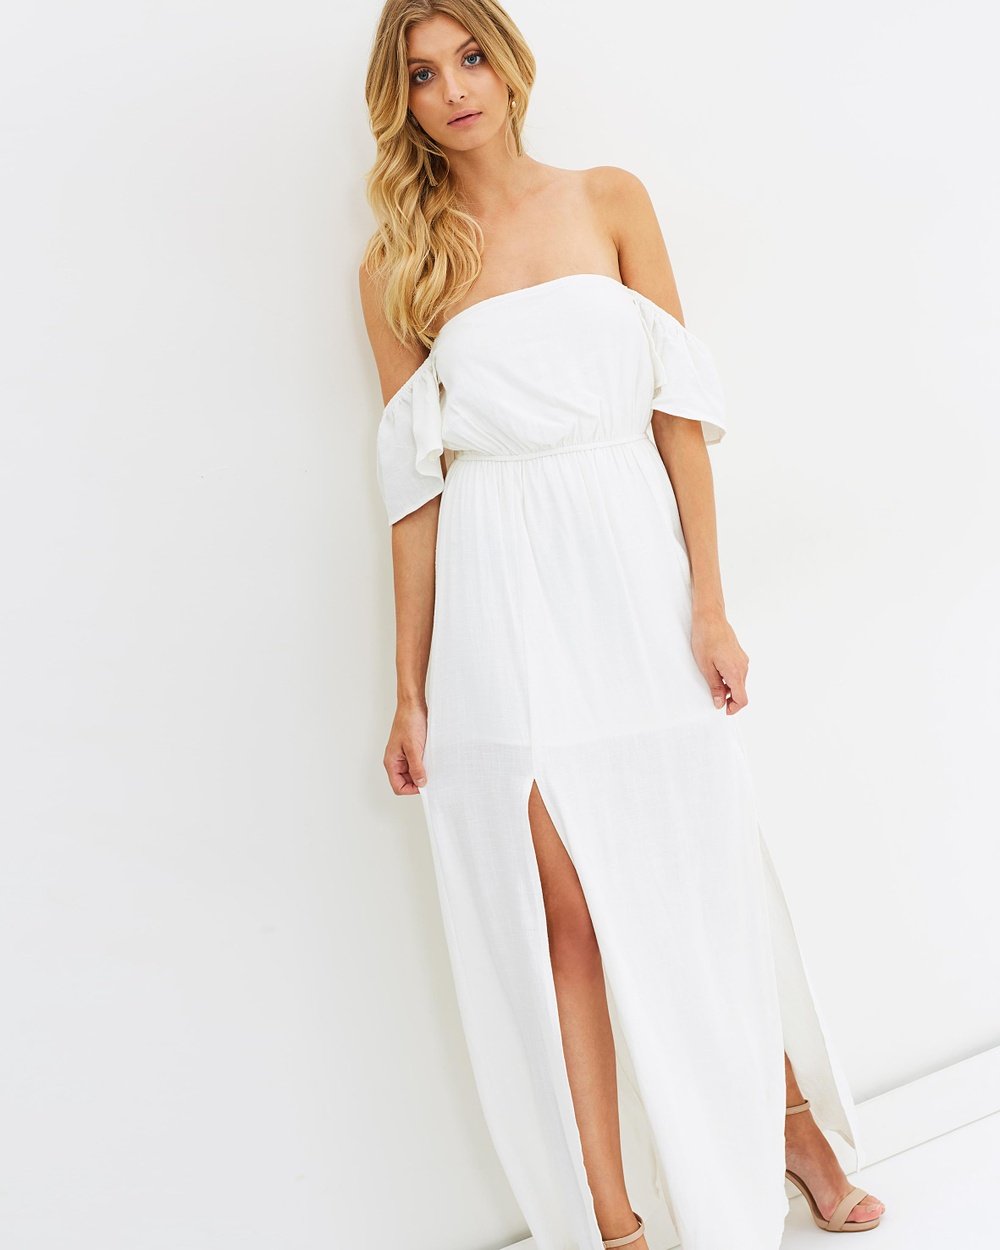 Atmos & Here ICONIC EXCLUSIVE Dhalia Off Shoulder Maxi Dress Dresses White ICONIC EXCLUSIVE Dhalia Off-Shoulder Maxi Dress